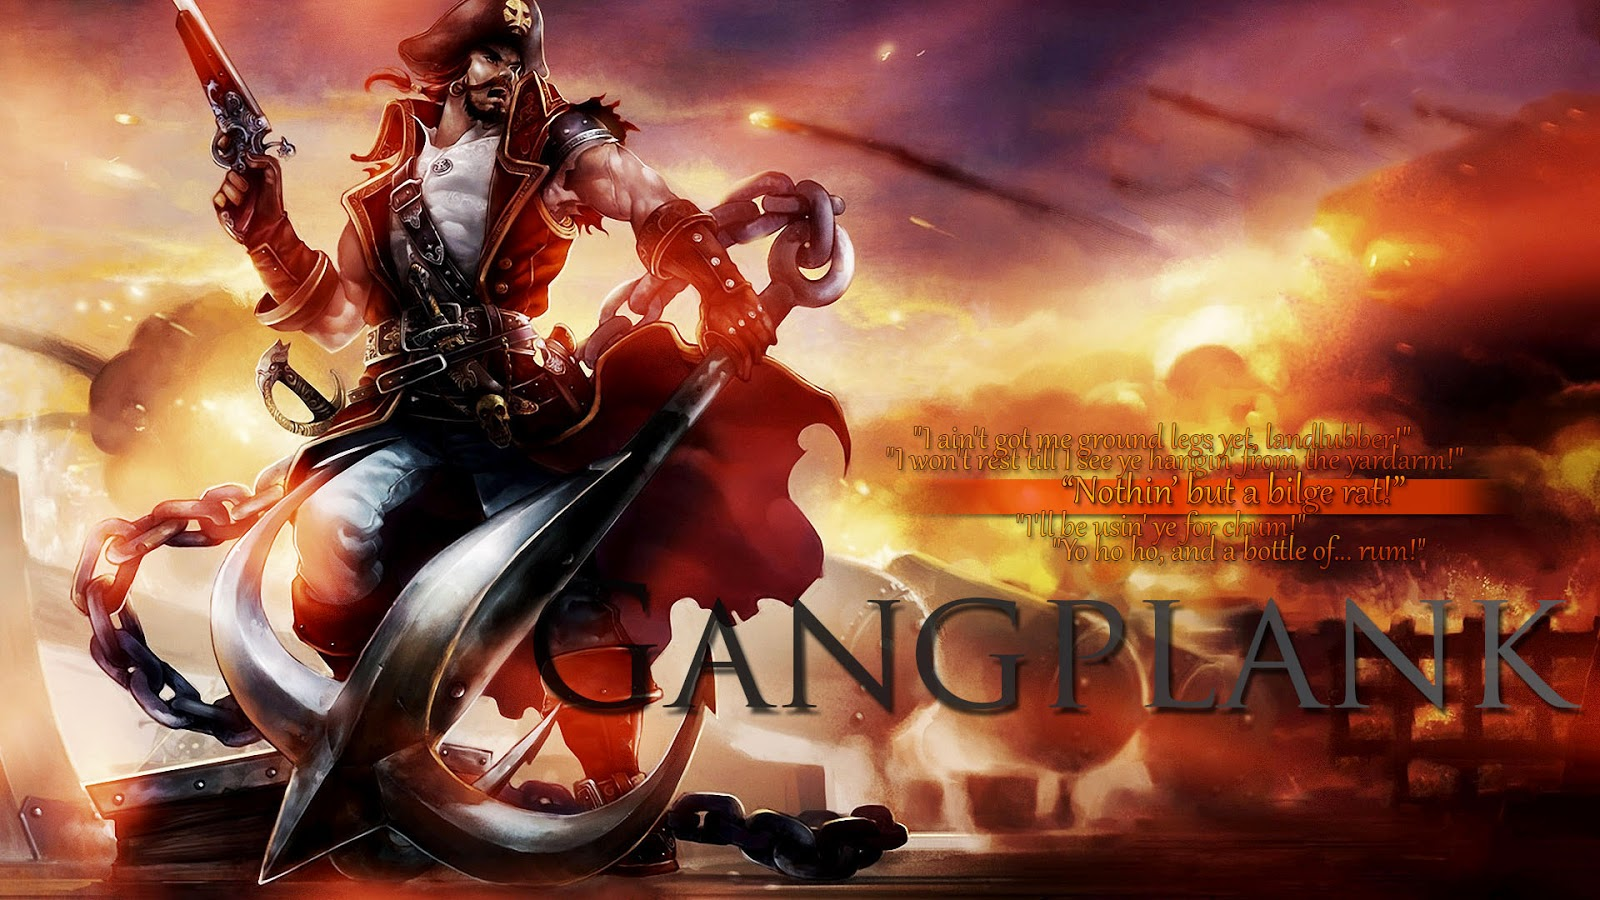 Gangplank League of Legends Wallpaper